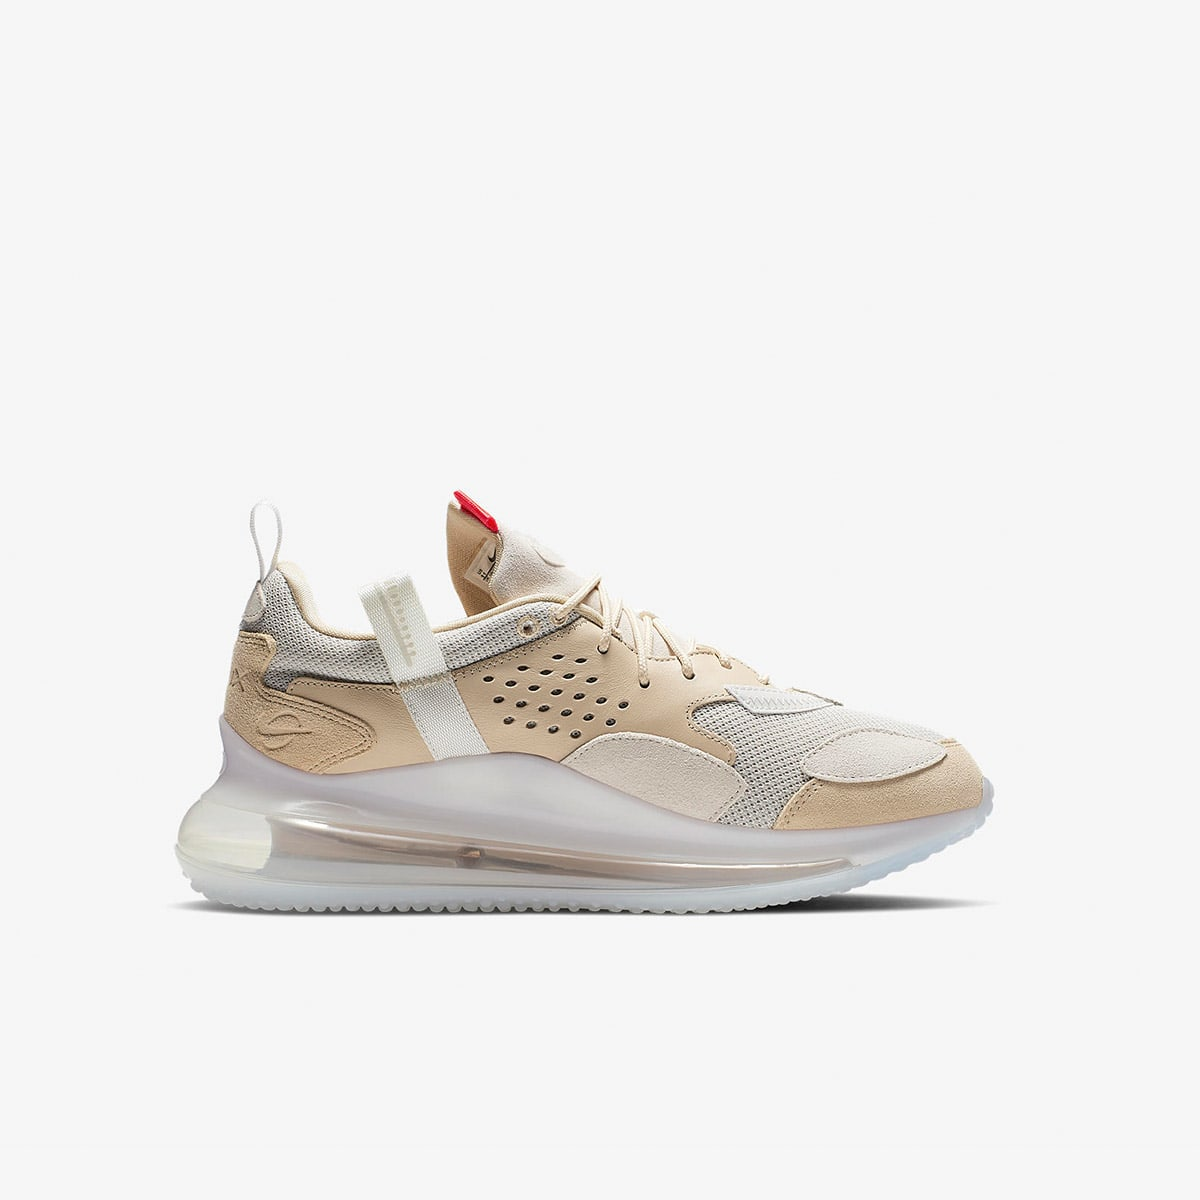 new styles dff52 6c726 END. Features | Nike x Odell Beckham Jr Air Max 720 ...